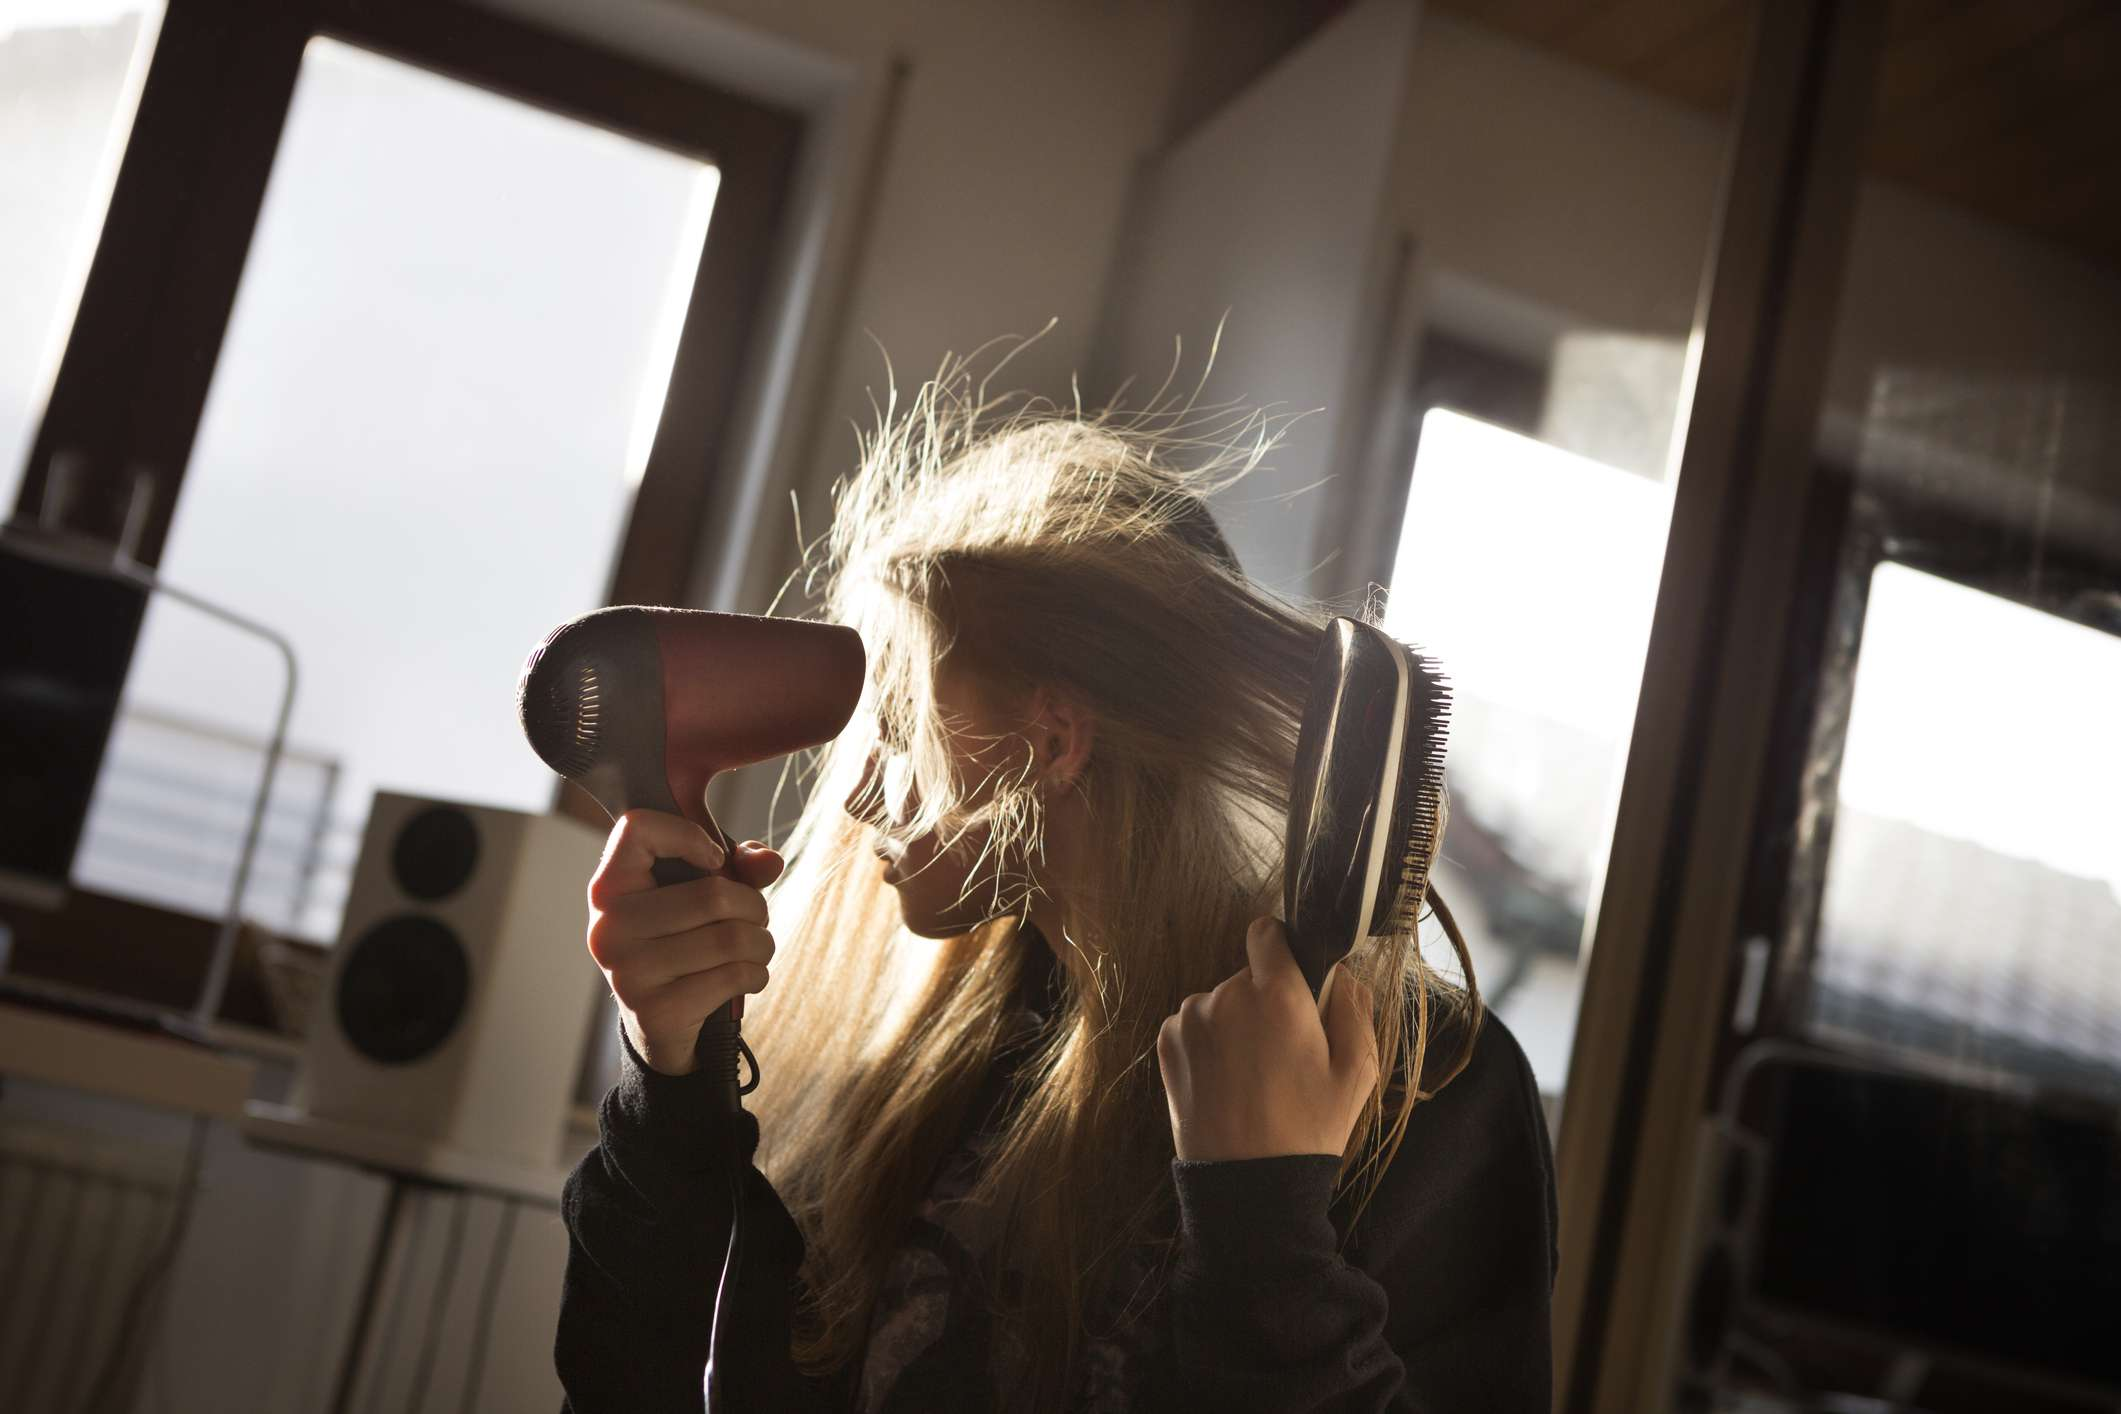 A blonde woman uses a blow dryer to dry her hair in the summer.